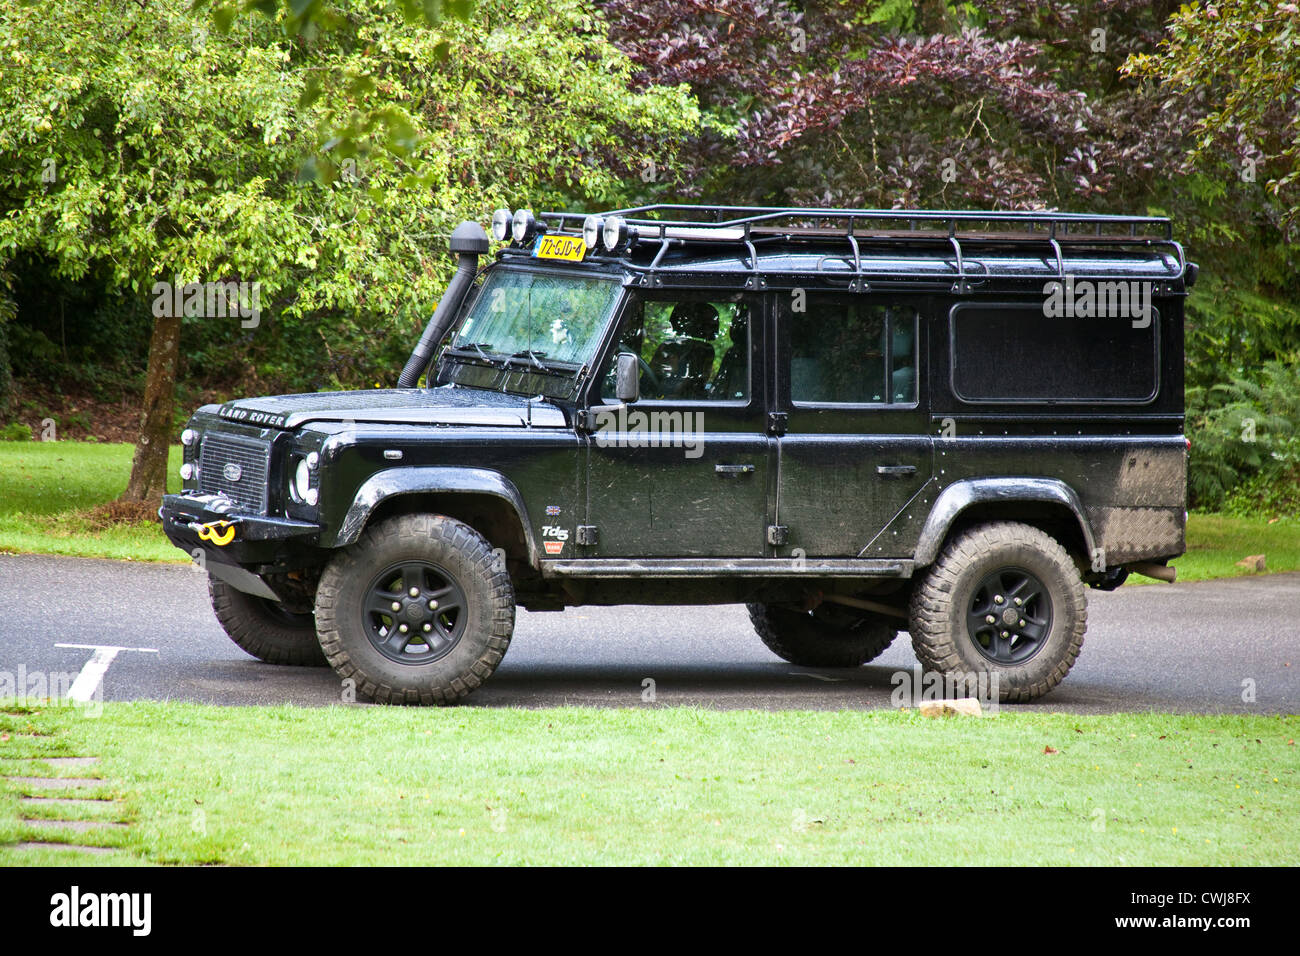 black land rover defender 110 cornwall england united kingdom stock photo royalty free image. Black Bedroom Furniture Sets. Home Design Ideas